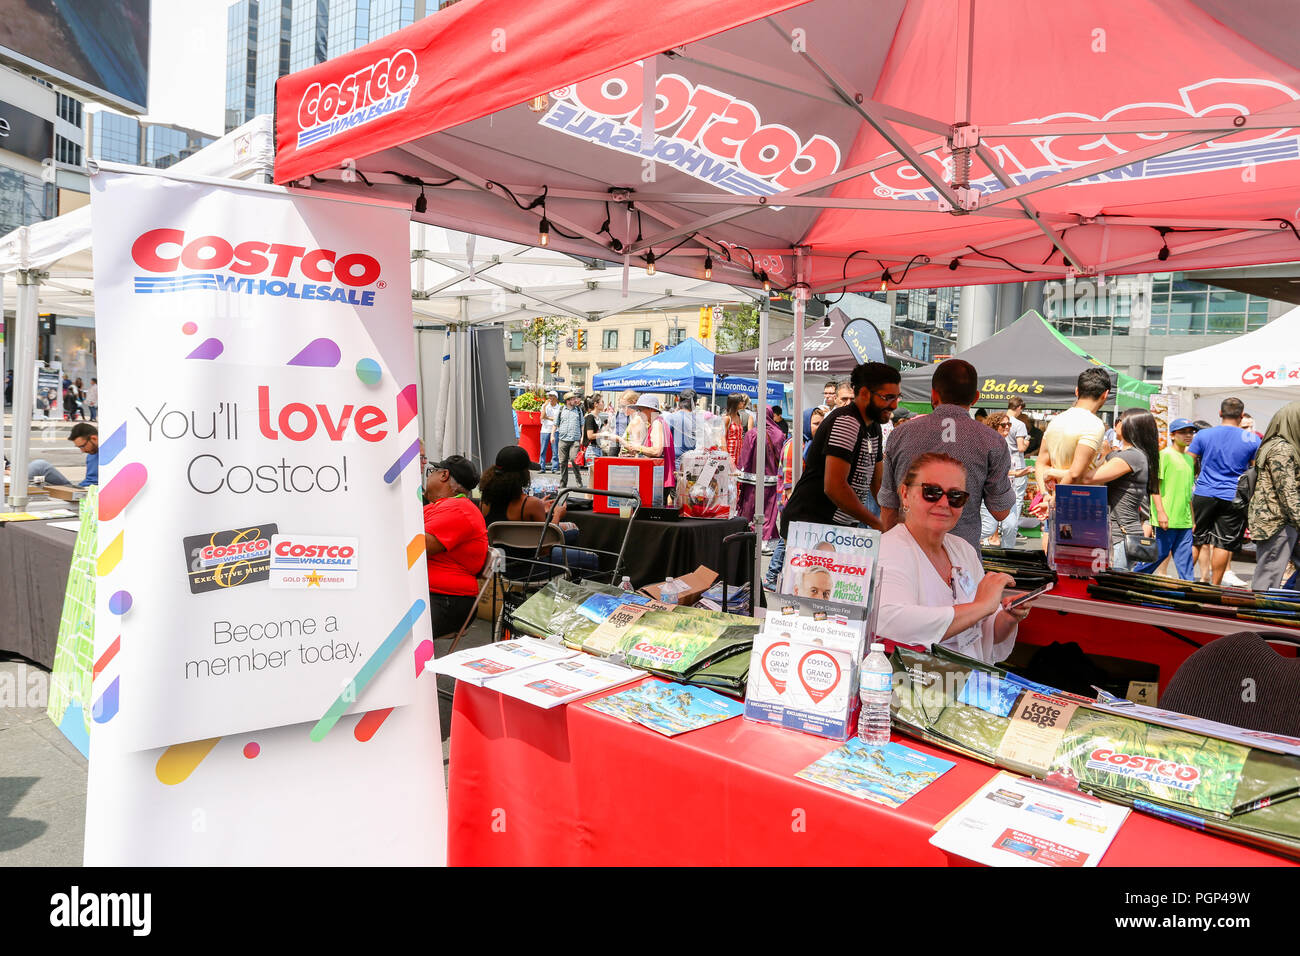 TORONTO, CANADA - AUGUST 4, 2018: TASTE OF THE MIDDLE EAST